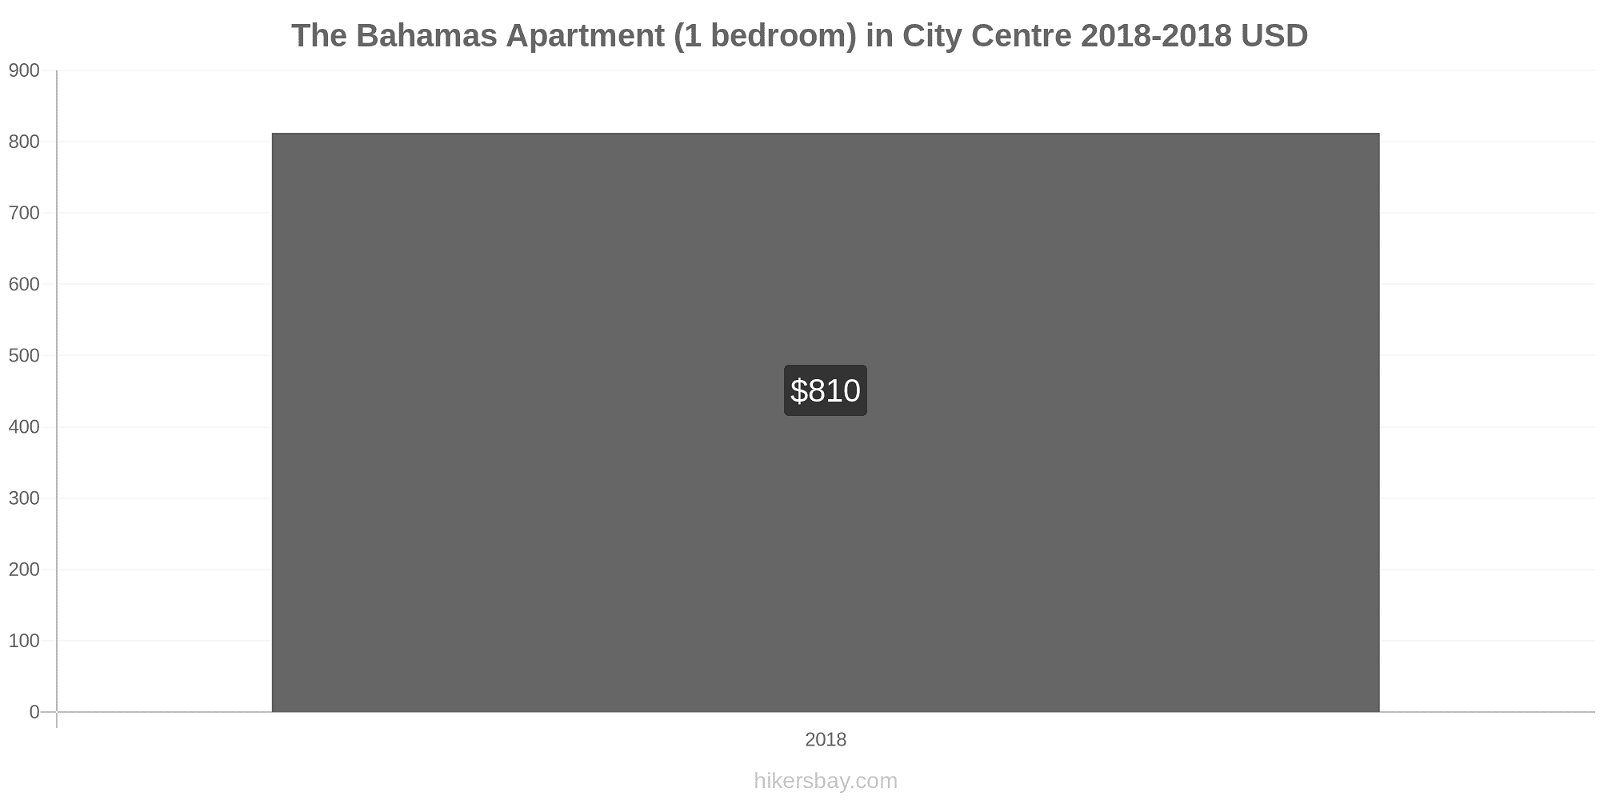 The Bahamas price changes Apartment (1 bedroom) in City Centre hikersbay.com